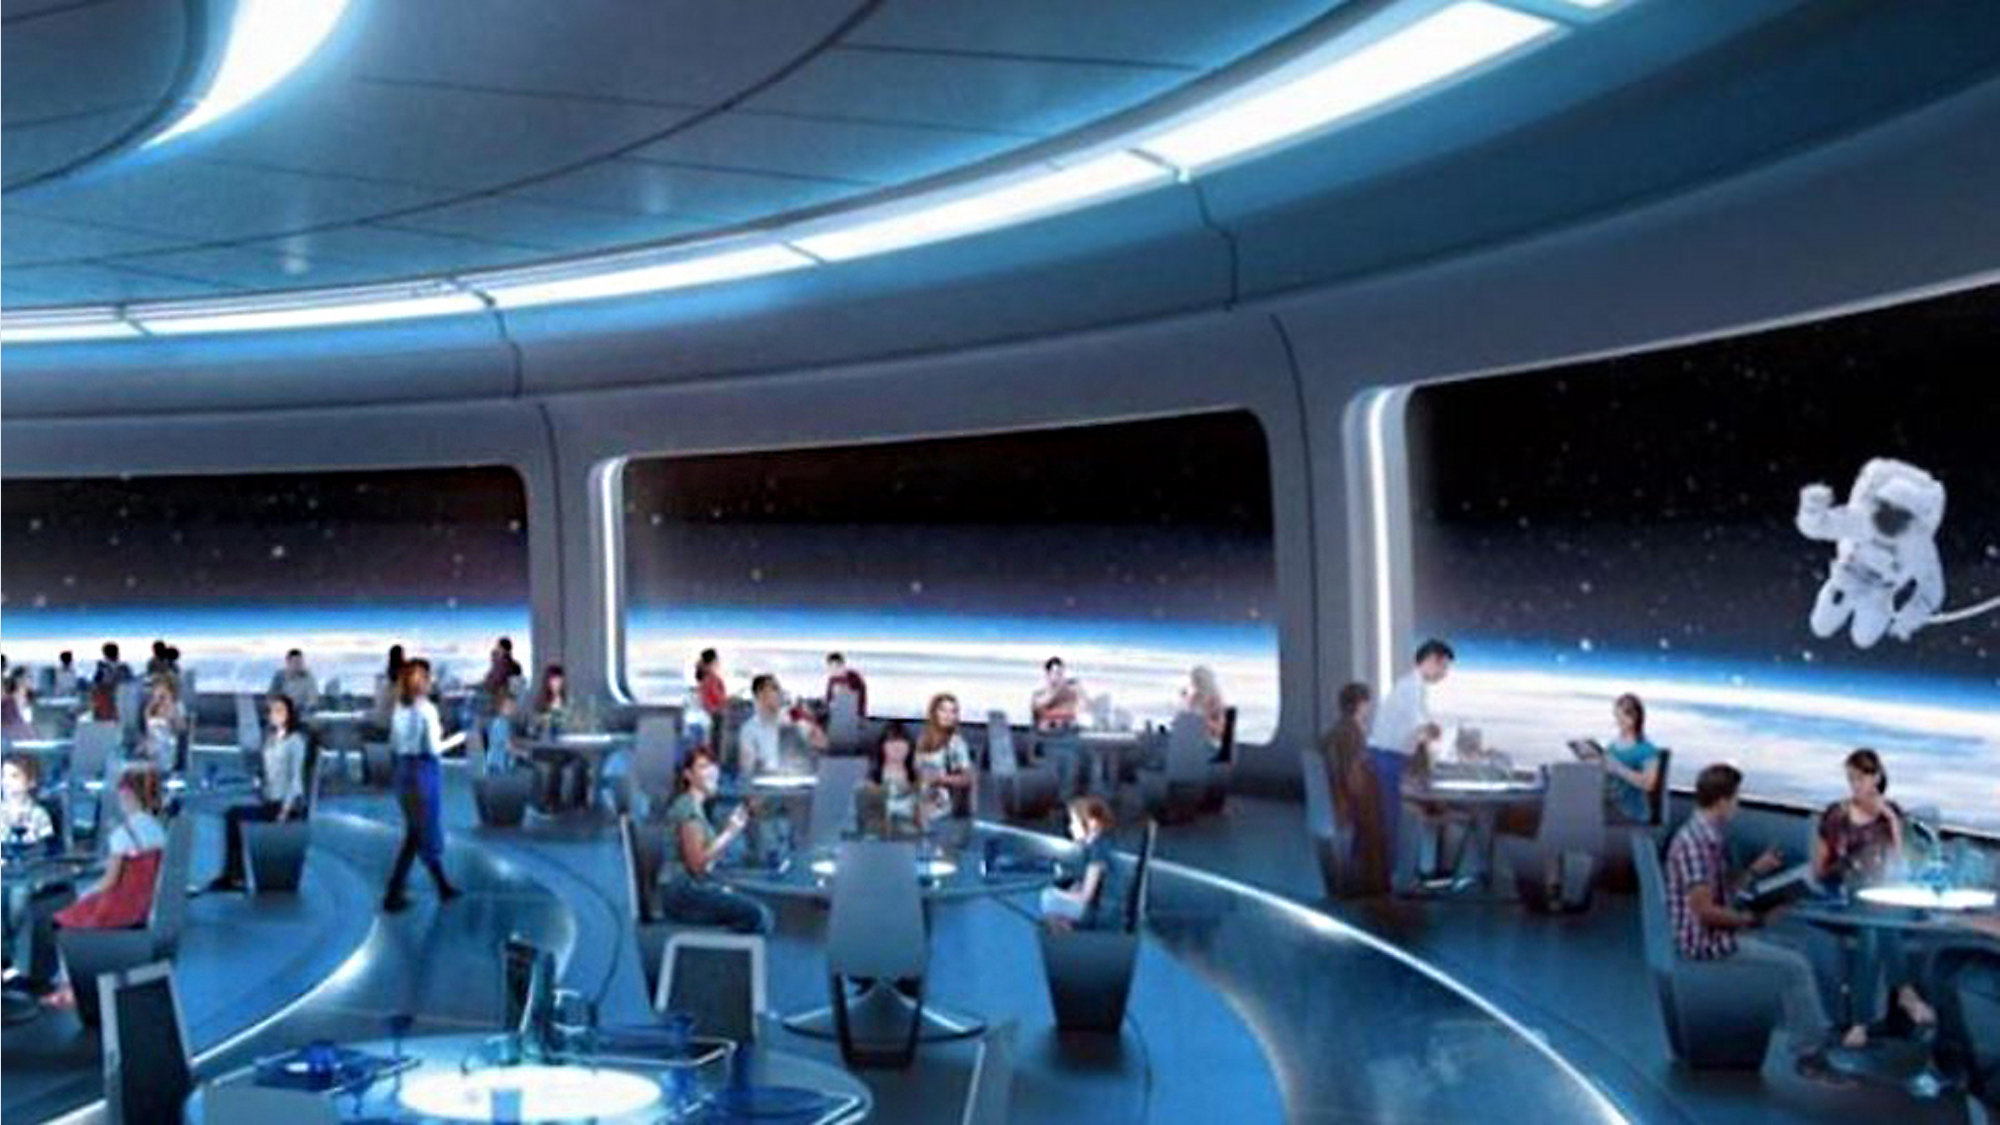 Space Themed Restaurant To Open At Epcot Later This Year